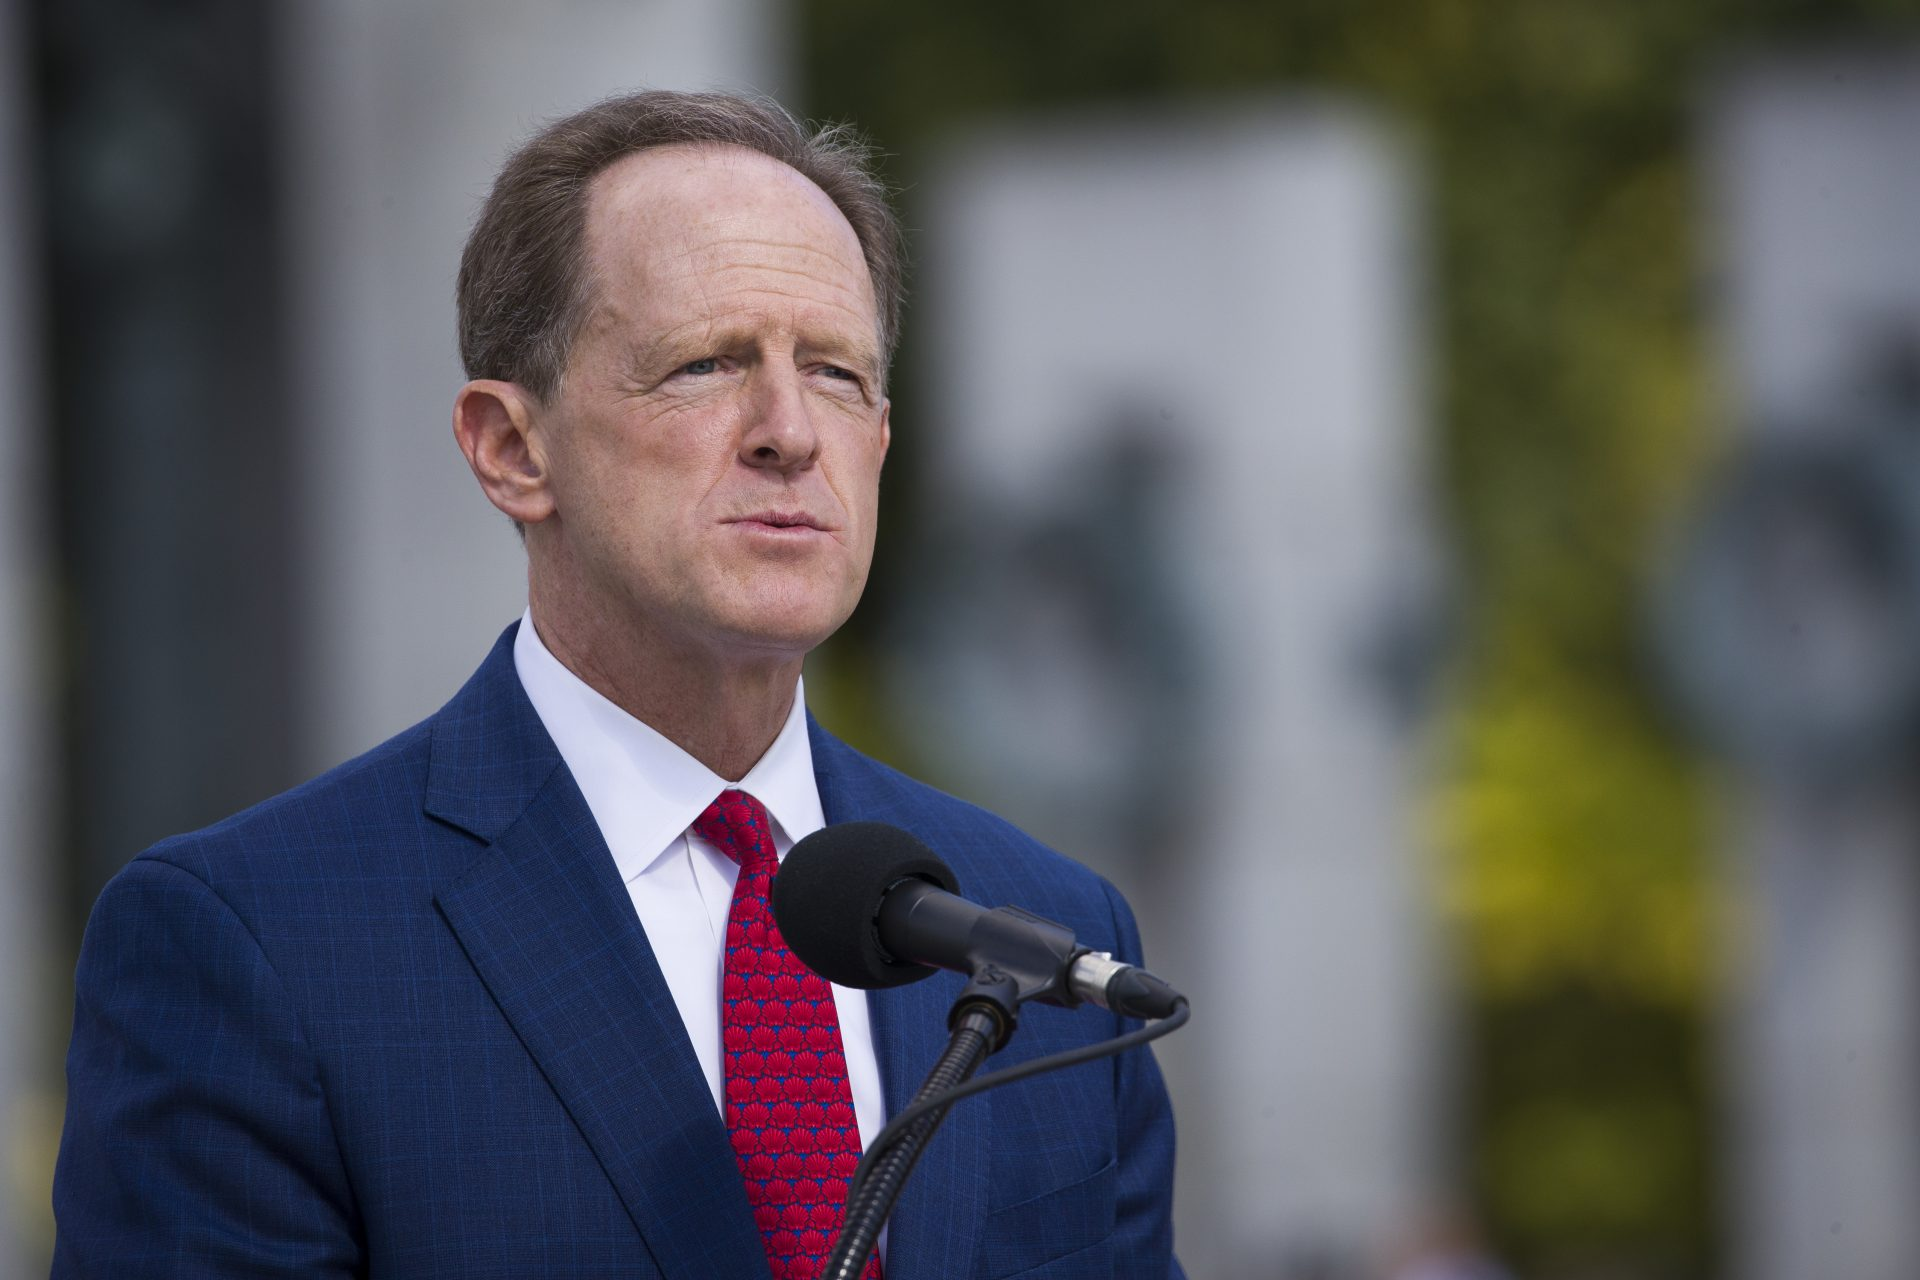 Sen. Pat Toomey, R-Pa., speaks during a ceremony Wednesday, Sept. 18, 2019, in Washington. Toomey will not seek re-election in 2022, according to a person with direct knowledge of Toomey's plans, Sunday, Oct. 4, 2020.